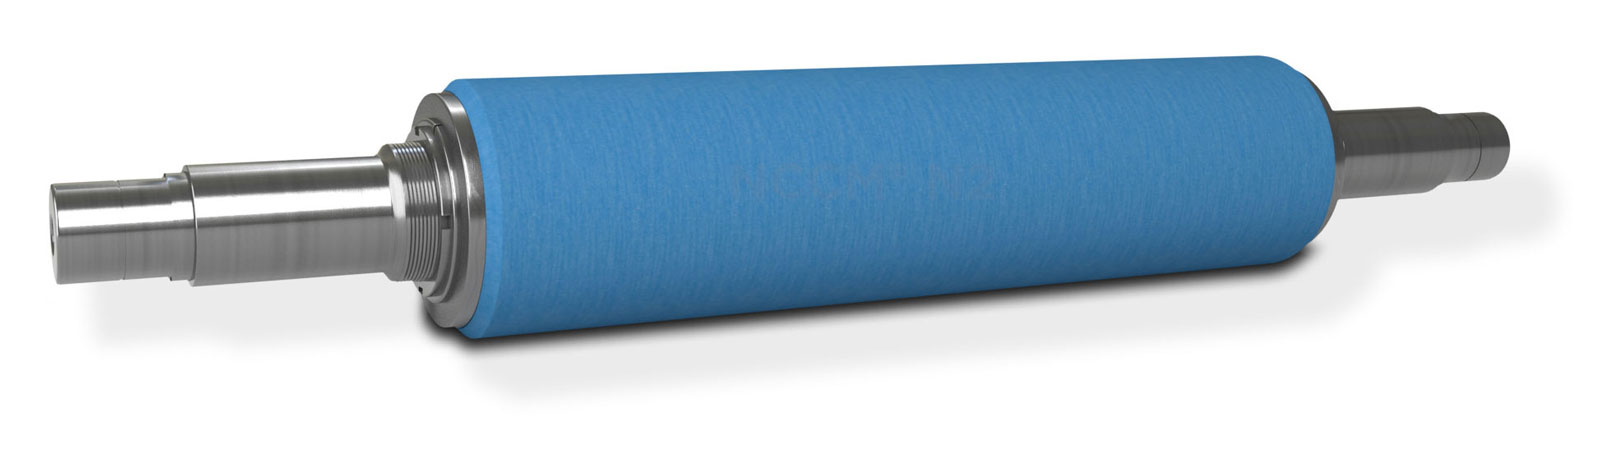 Perspective view of the NCCM<sup>®</sup> N2 nonwoven roll on a metal shaft